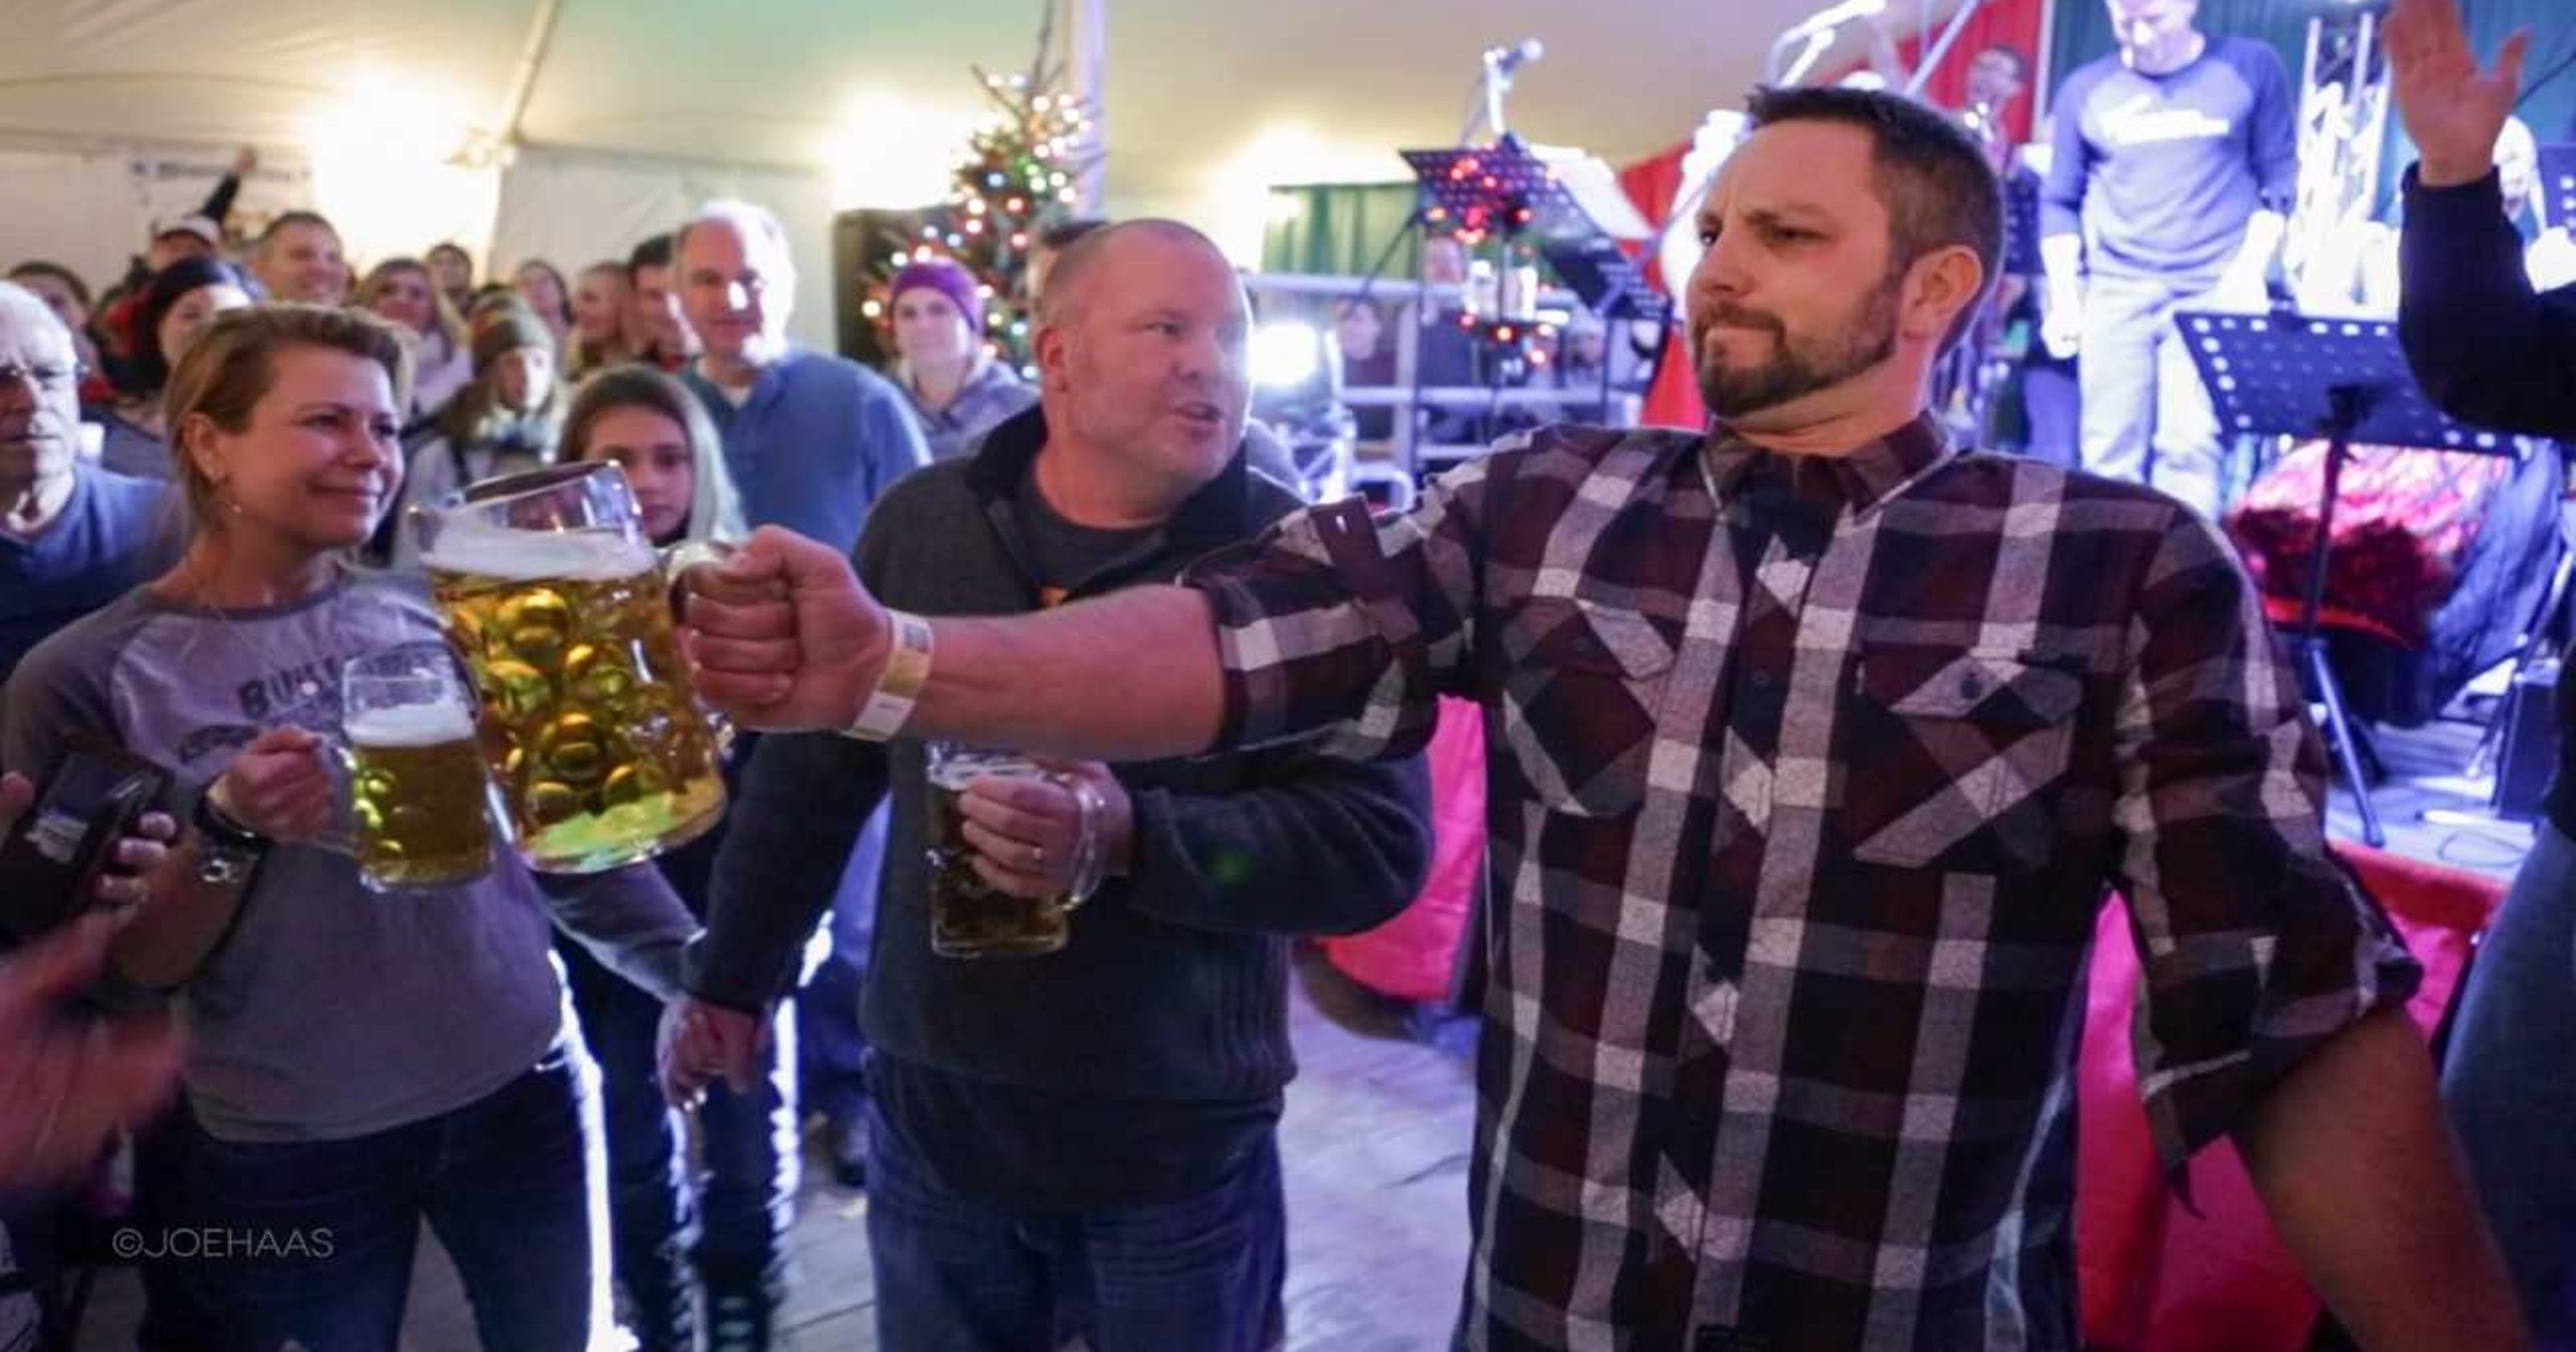 Ixonia man competes in national beer steinholding competition